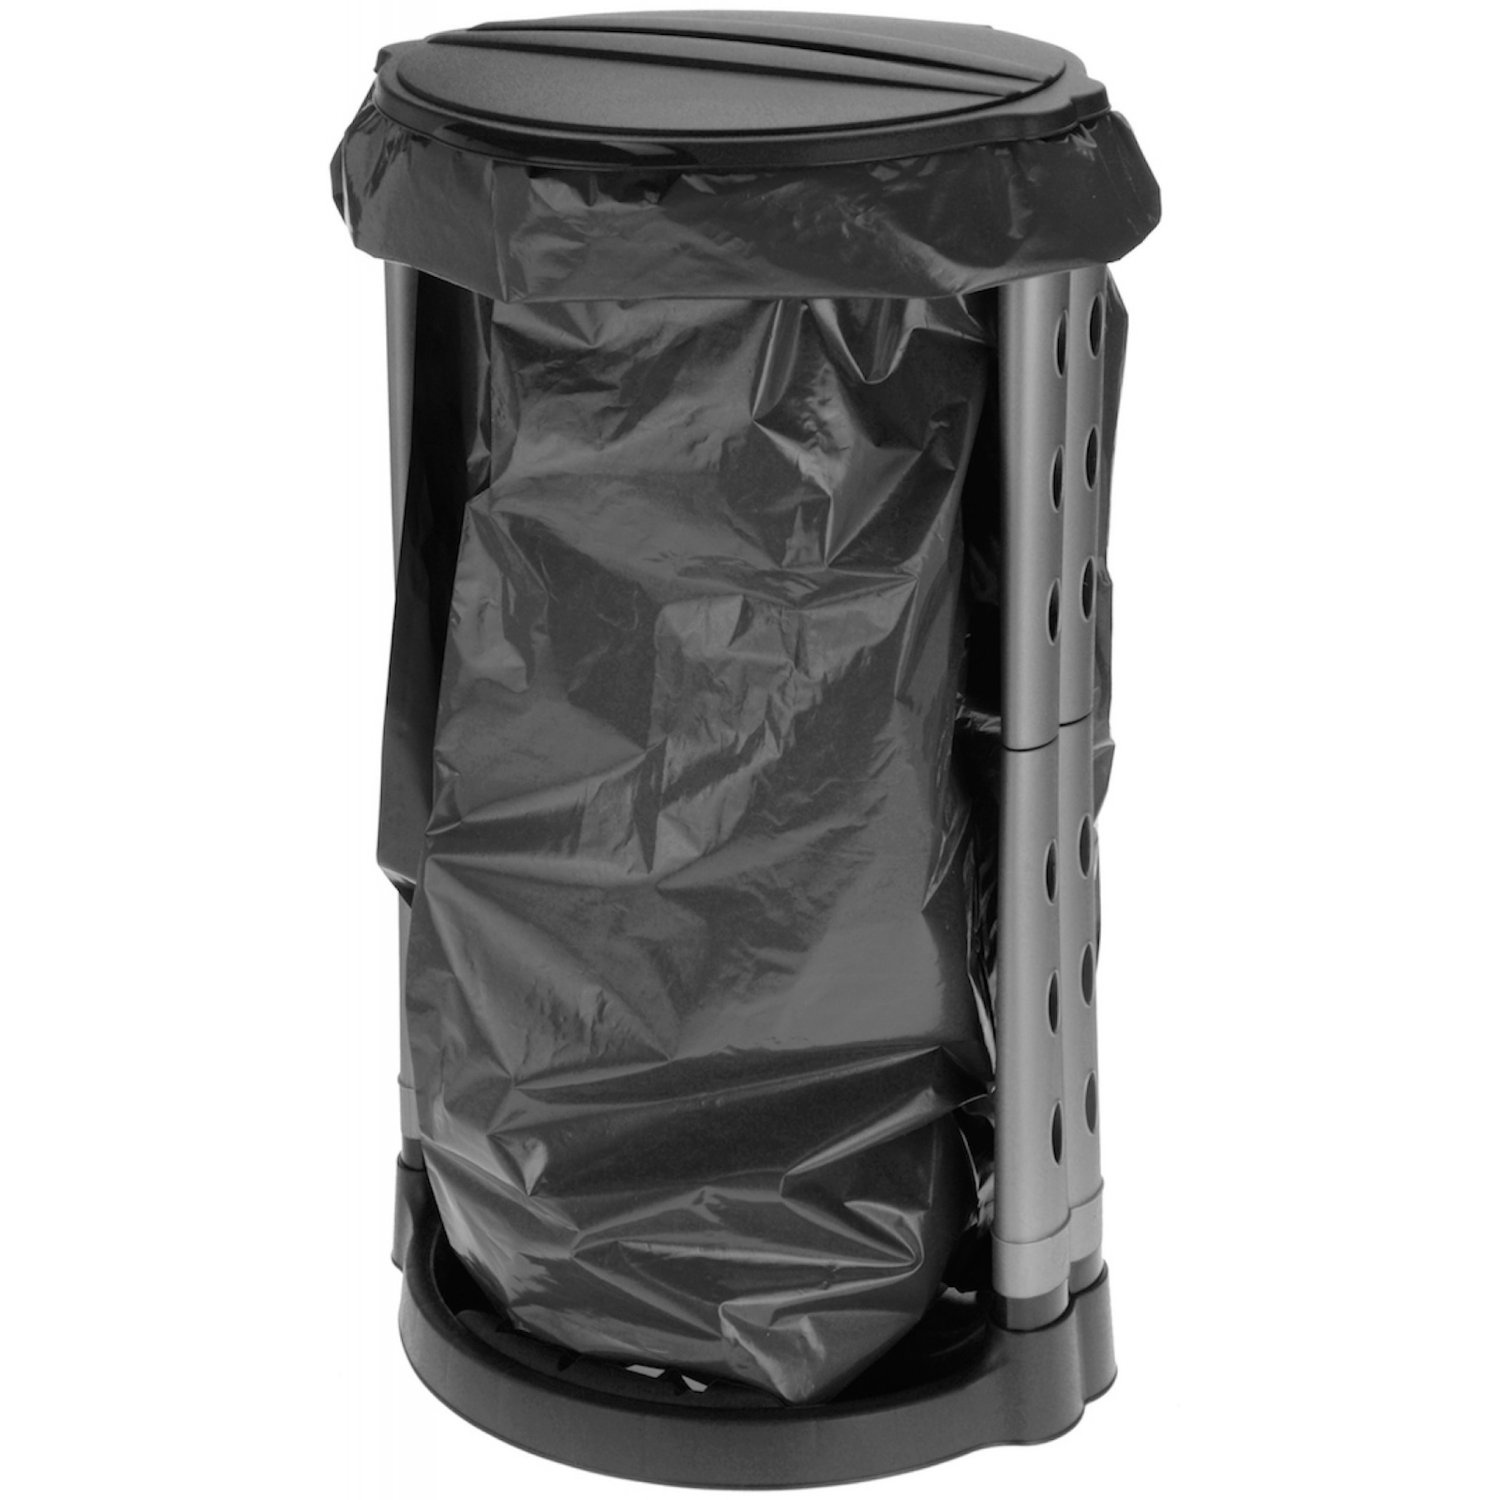 Tagliere Tiers Plastic Black 120 L Mullensack Waste Bin Bag Stander Picnic Outdoor Party Camping